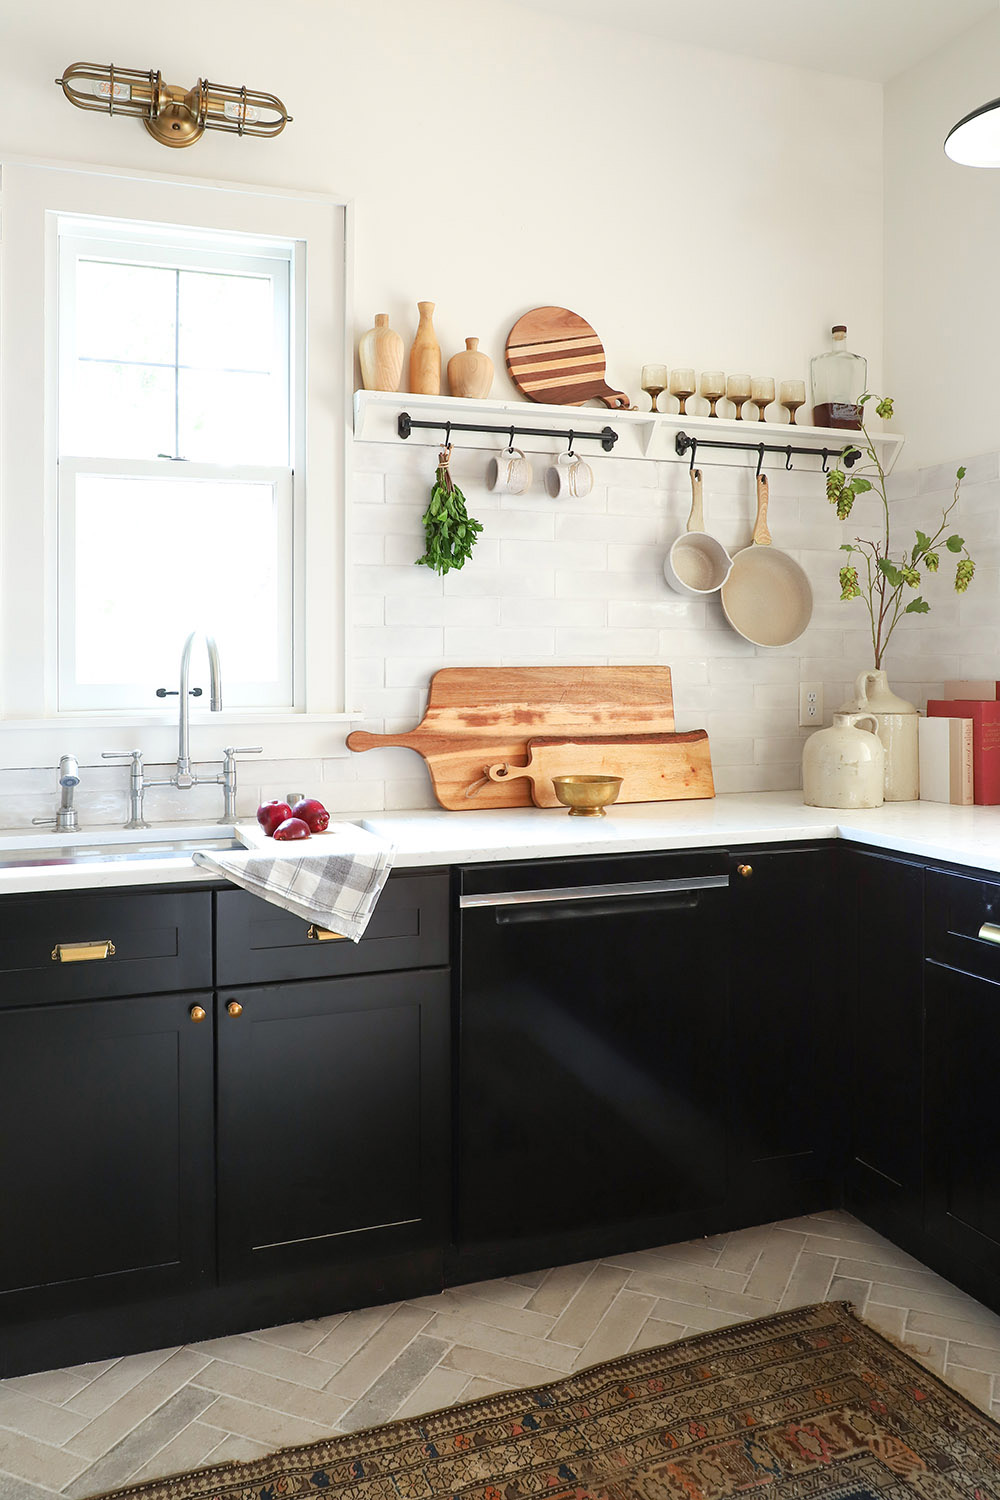 A black dishwasher and black cabinets with gold hardware.